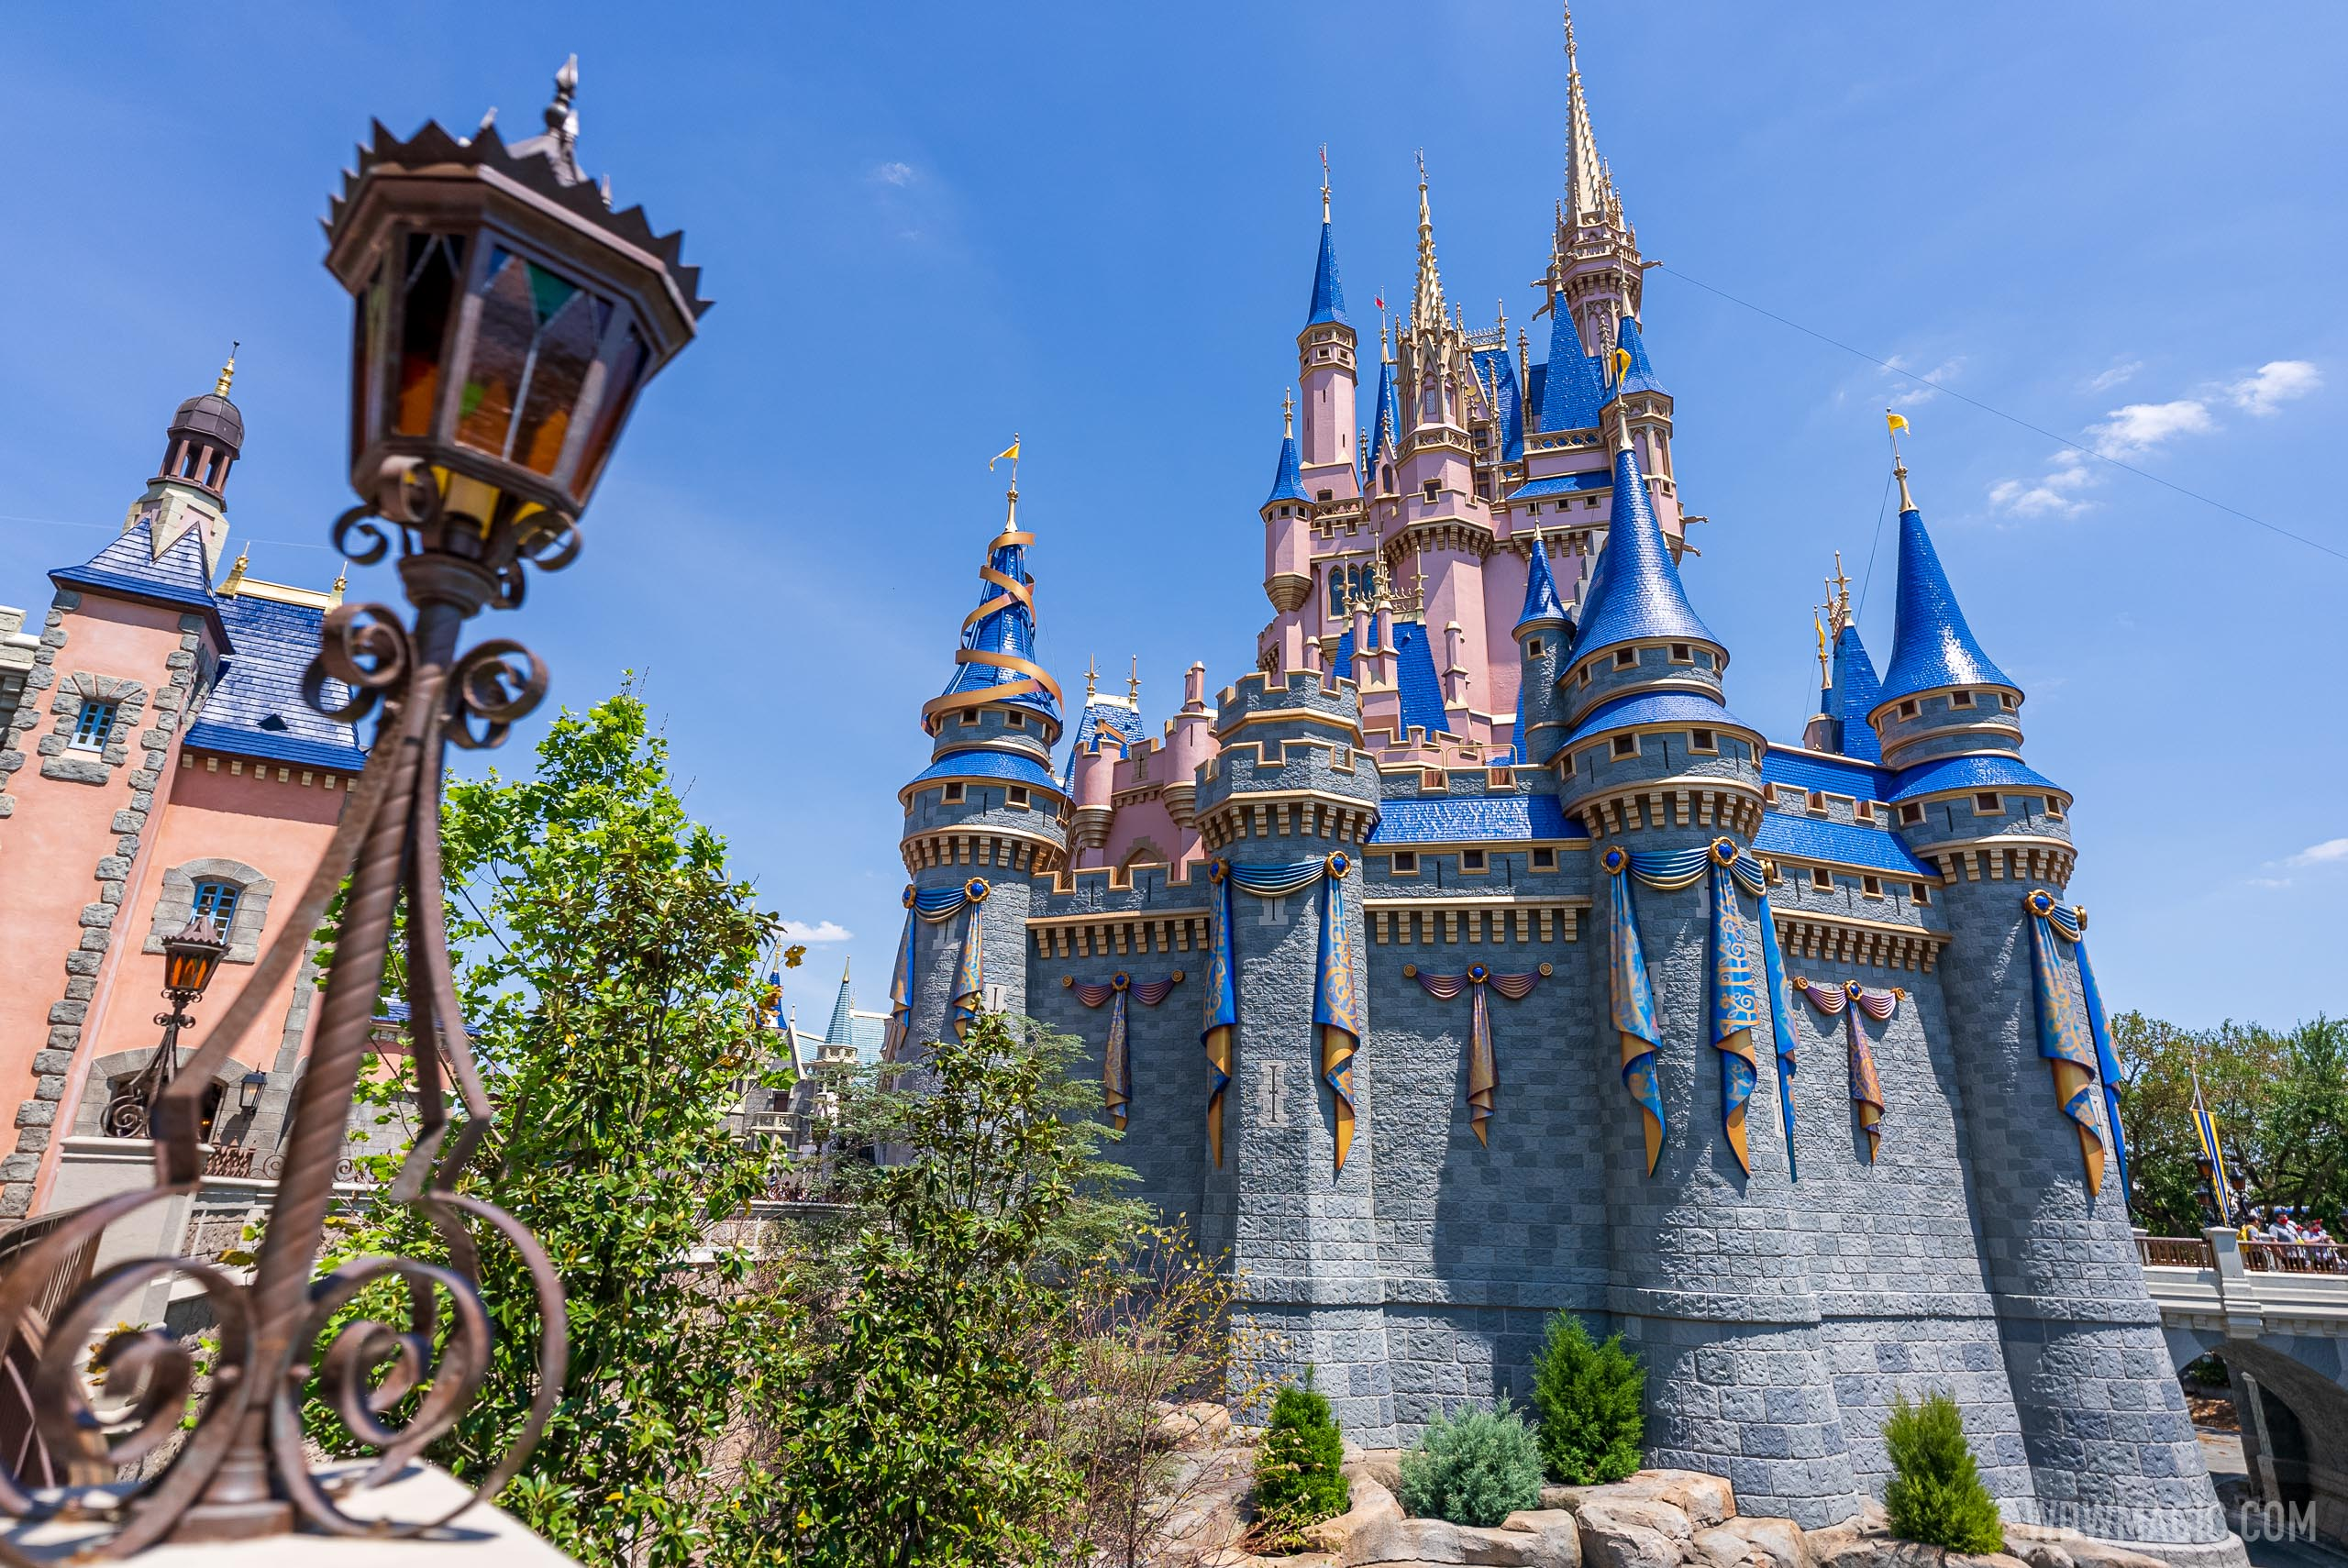 Magic Kingdom operating hours have been increased for June with 9pm closings